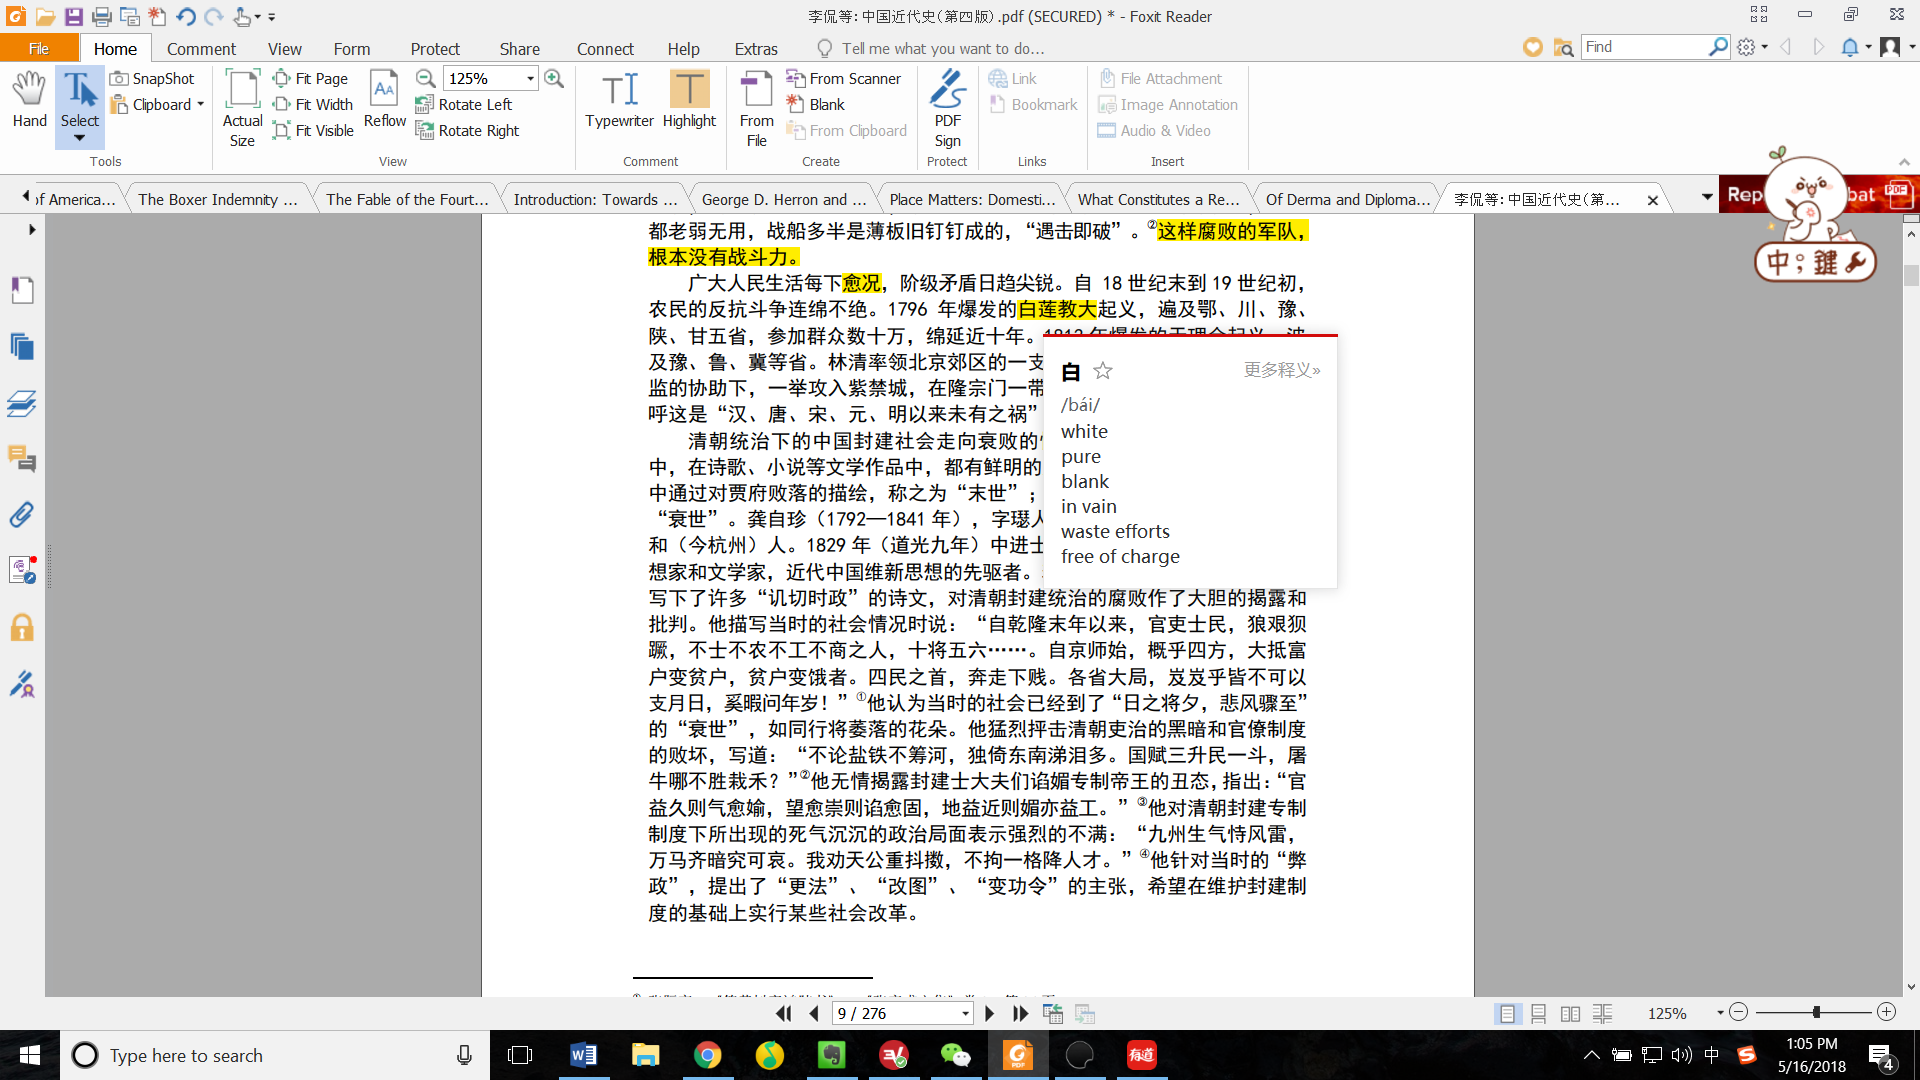 Chinese->English PopUp for Windows-10 - Chinese Computing